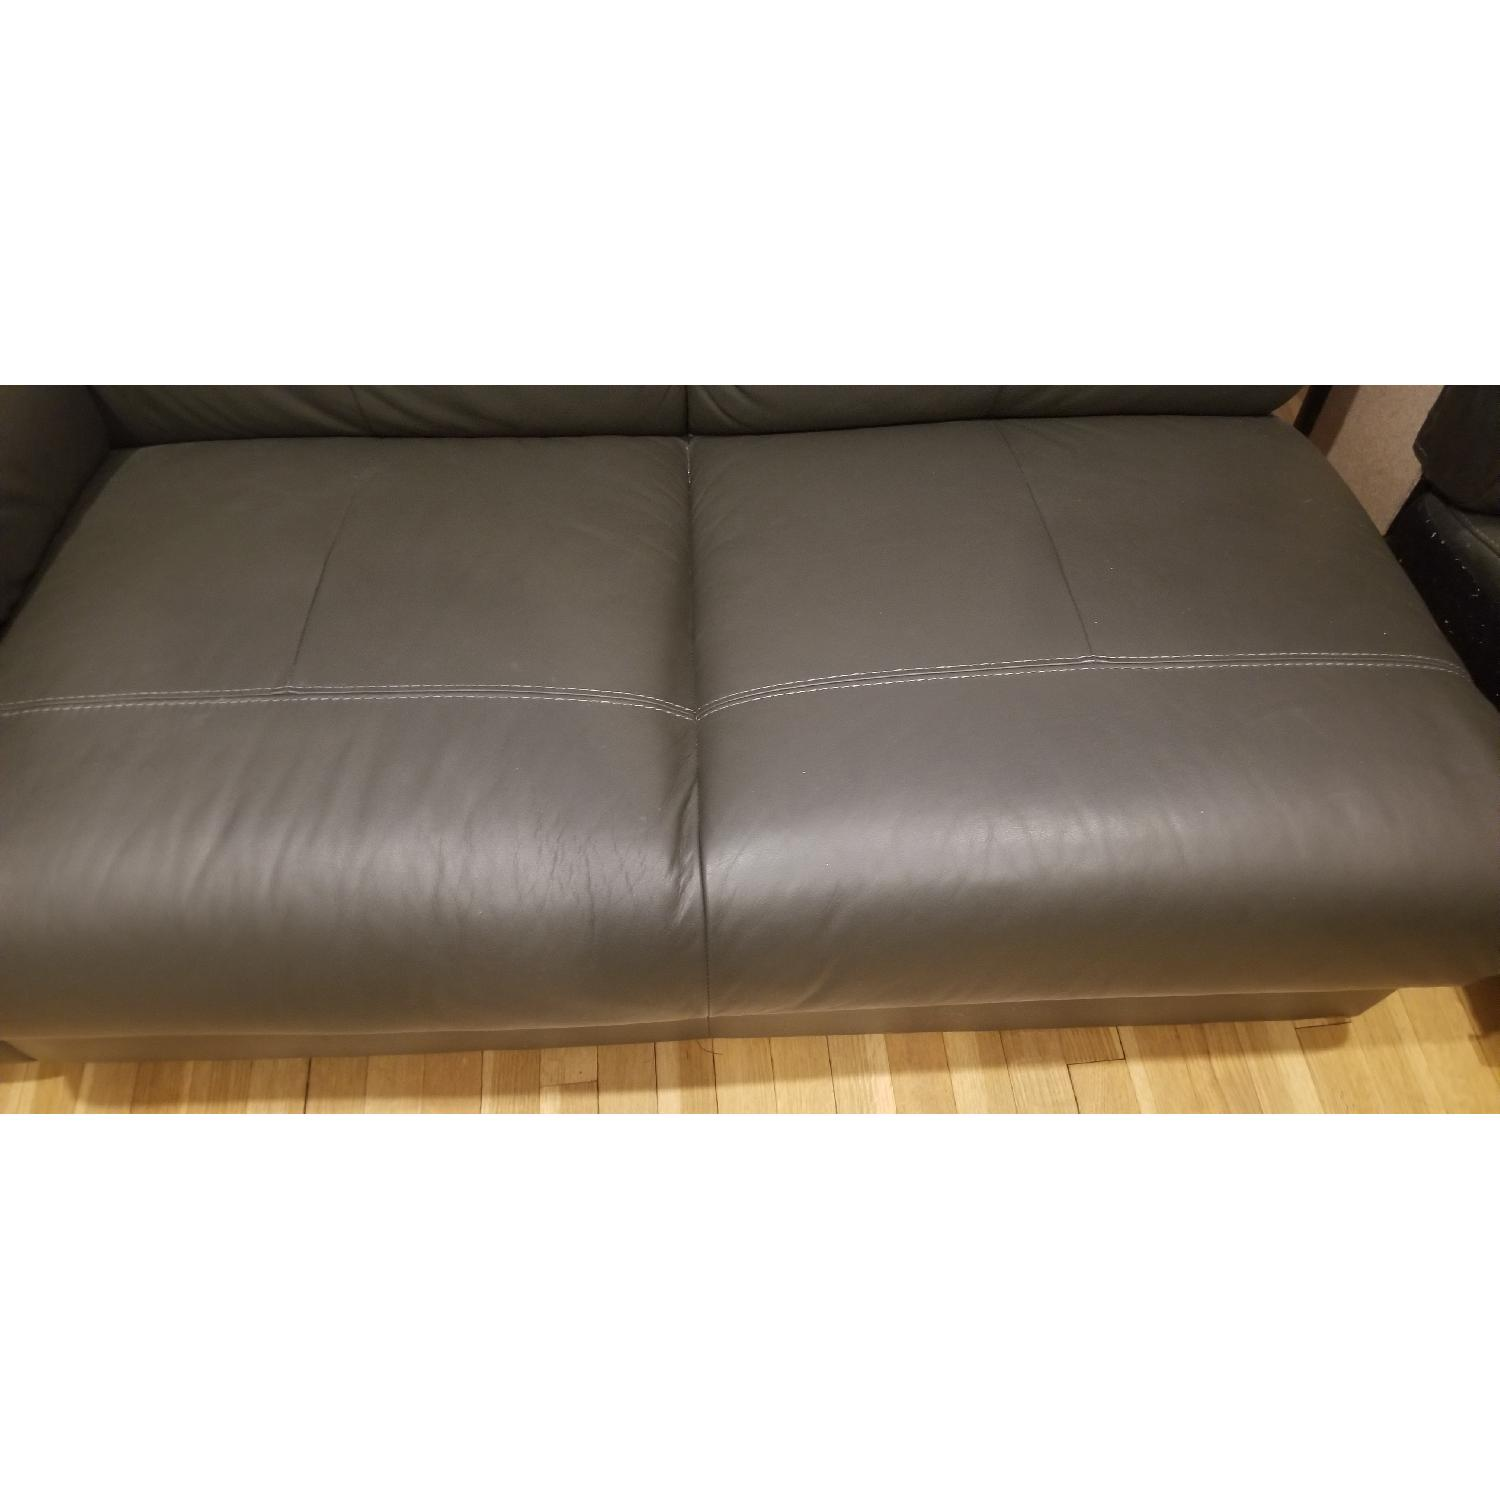 Ikea Timsfors Faux Leather Sectional Sofa - image-17